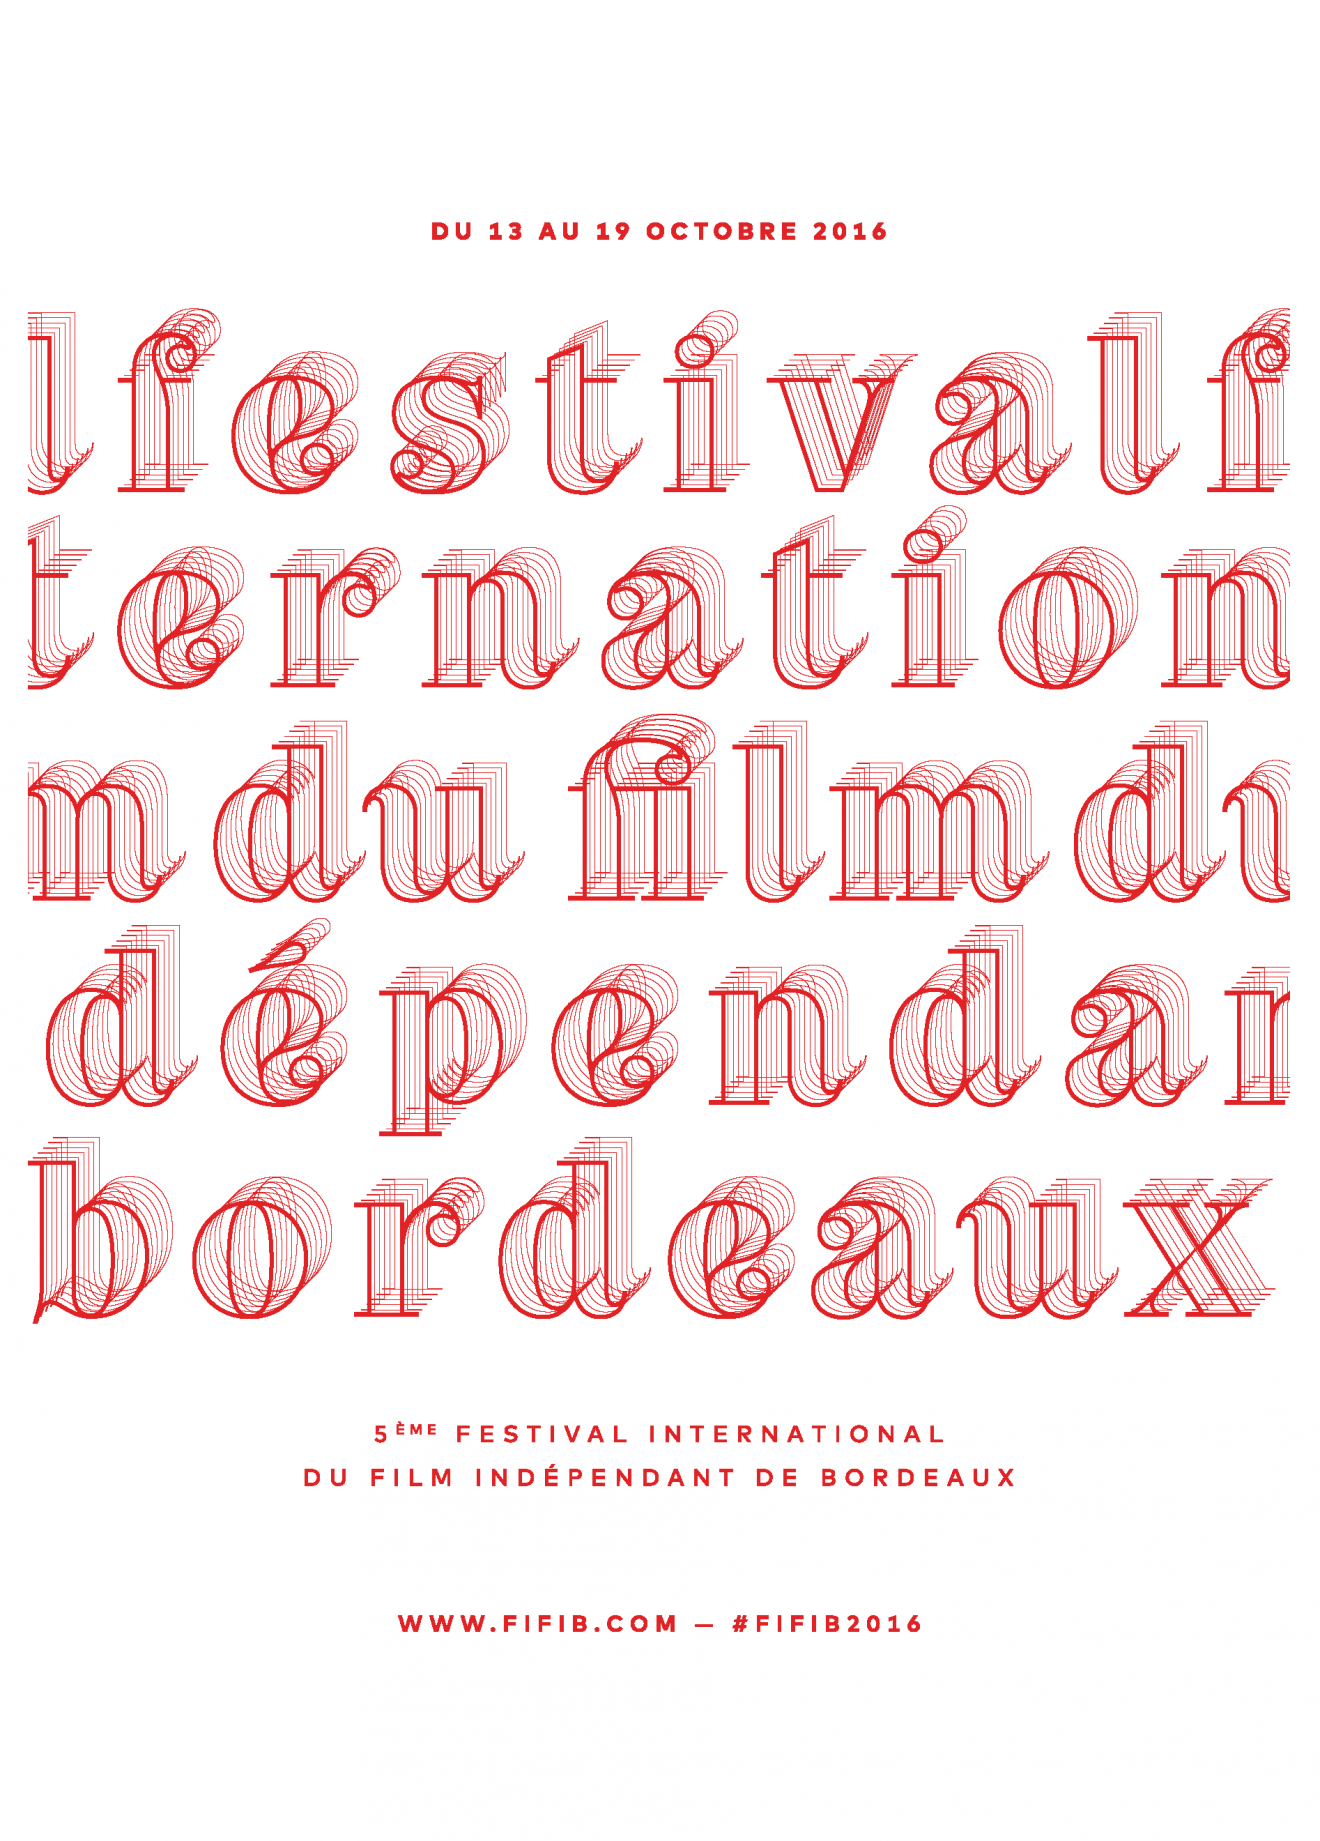 fifib2016, type, lettering, five, festival, cinema, movie, bordeaux